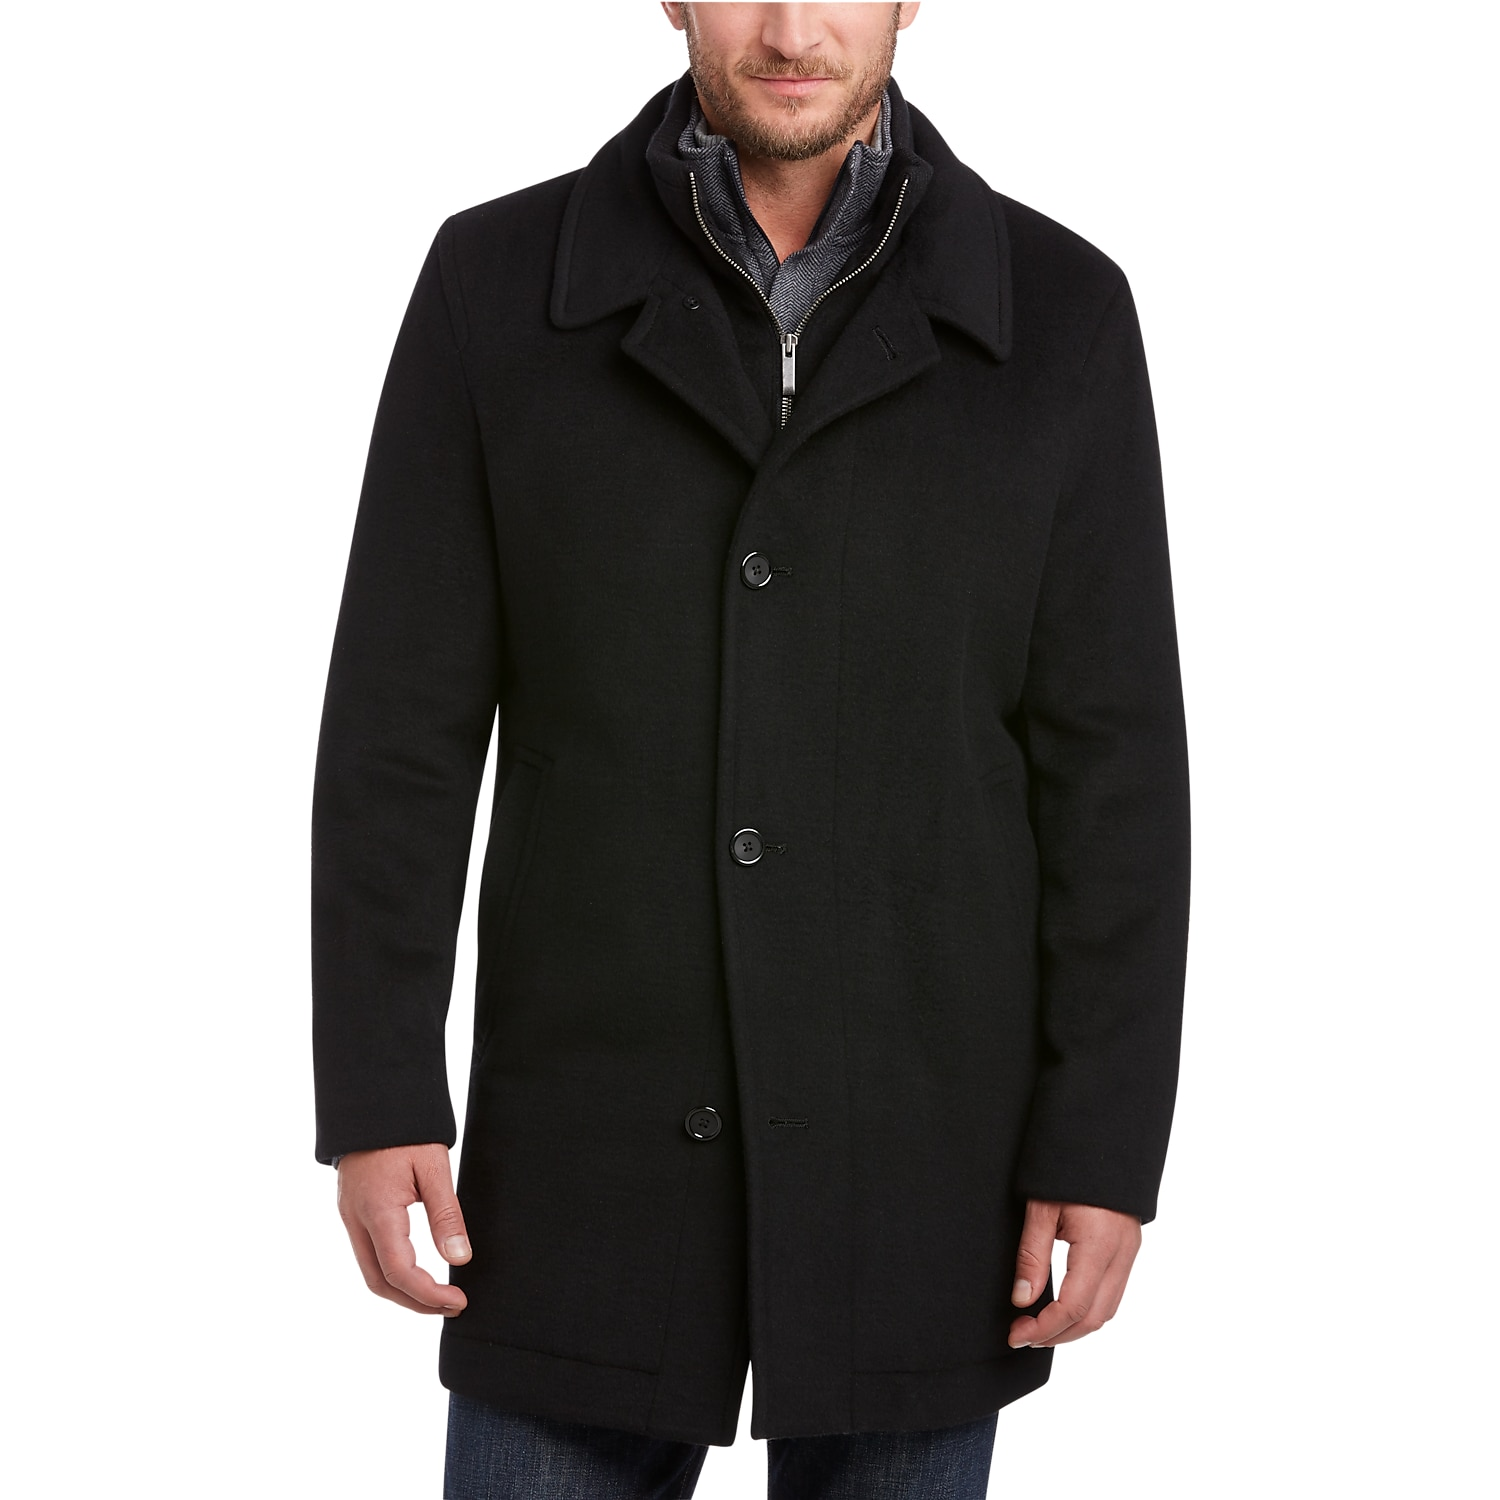 Big & Tall Men's Casual Jackets & Outerwear | Men's Wearhouse